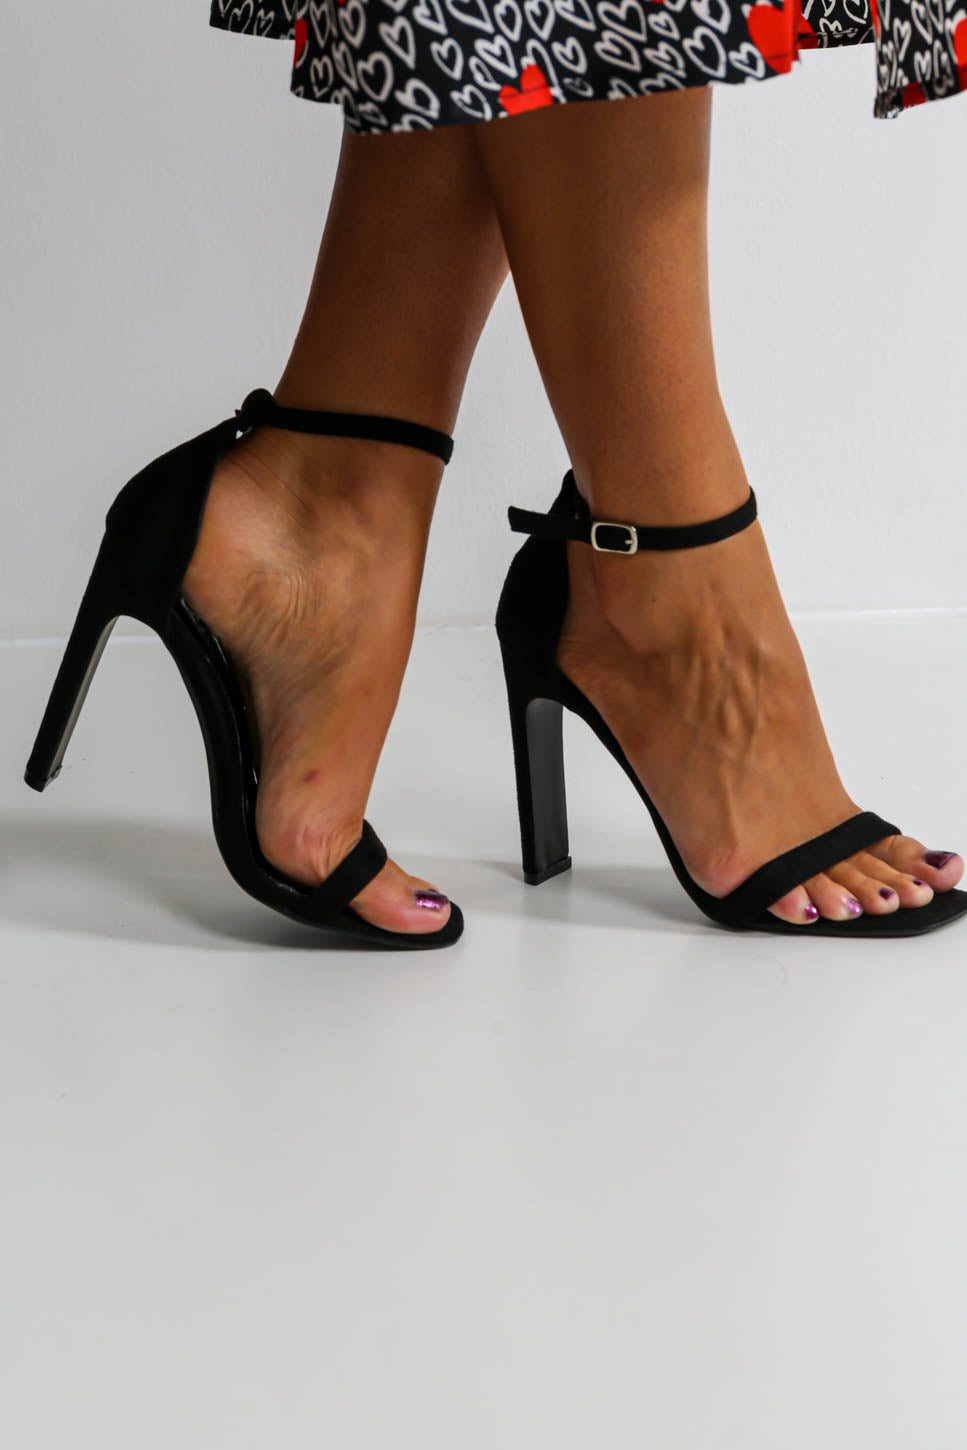 High There - Heels In BLACK